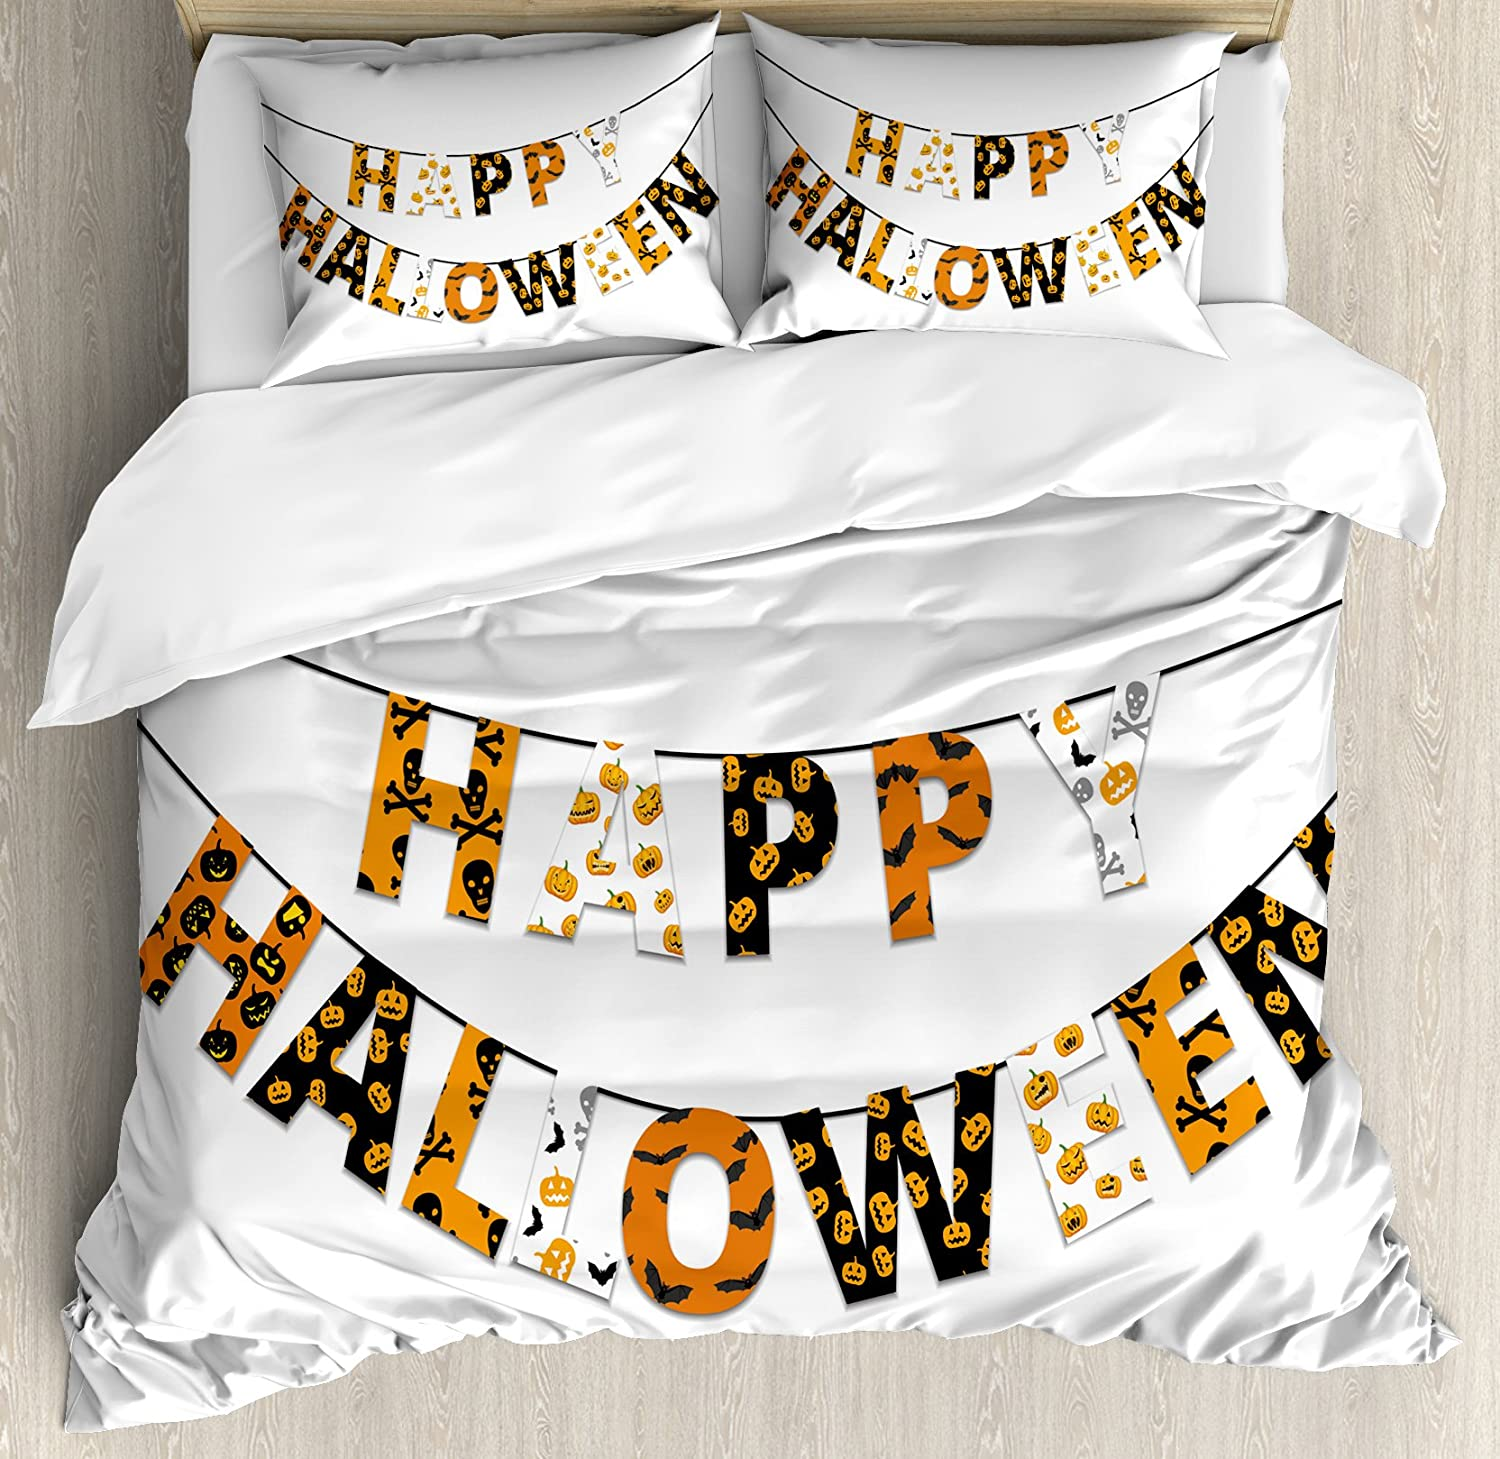 Halloween King Size Duvet Cover Set by Ambesonne, Happy Halloween Banner Greetings Pumpkins Skull Cross Bones Bats Pennant, Decorative 3 Piece Bedding Set with 2 Pillow Shams, Orange Black White